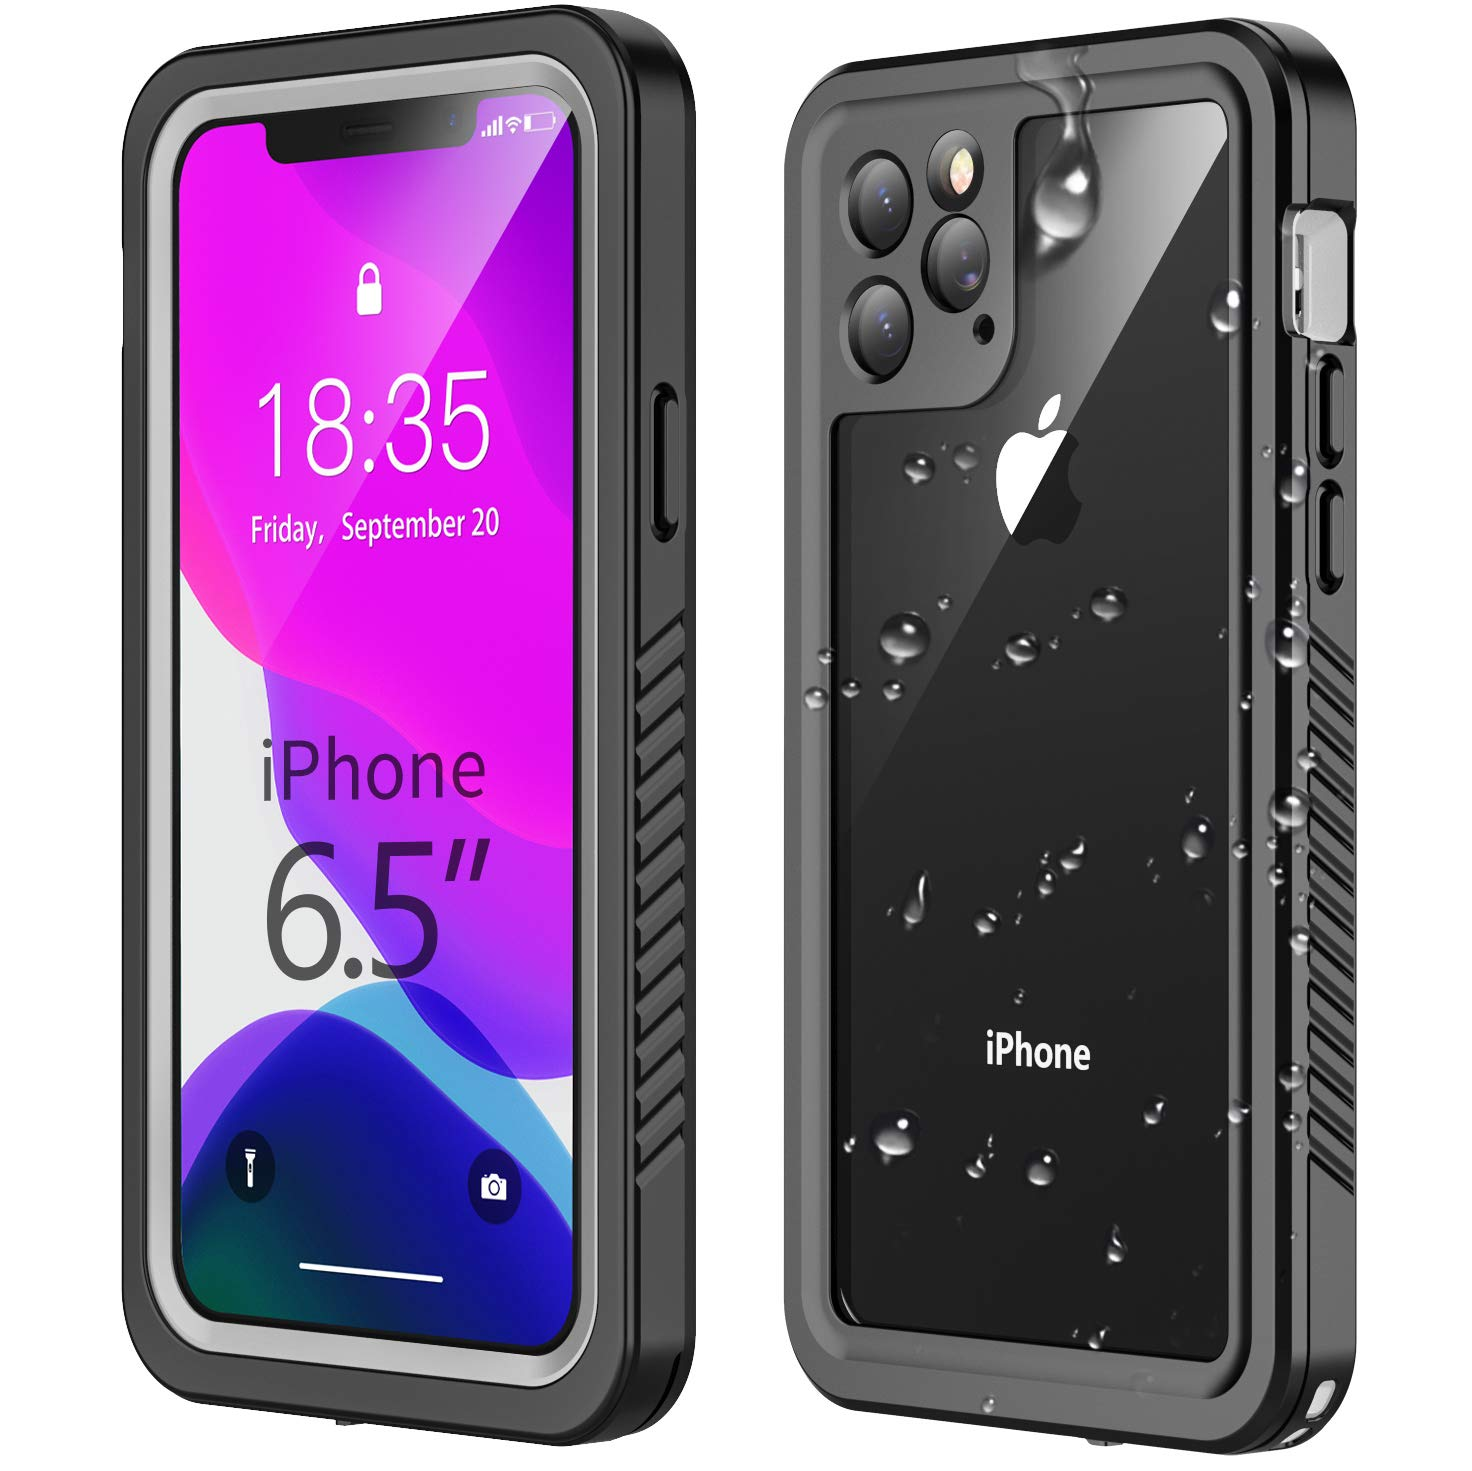 Temdan iPhone 11 Pro Max Waterproof Case, Built in Screen Protector Clear Sound Quality Full Sealed Cover Shockproof Dirtproof Outdoor Rugged Waterproof Cases for iPhone 11 Pro Max 6.5 inch 2019 by Temdan